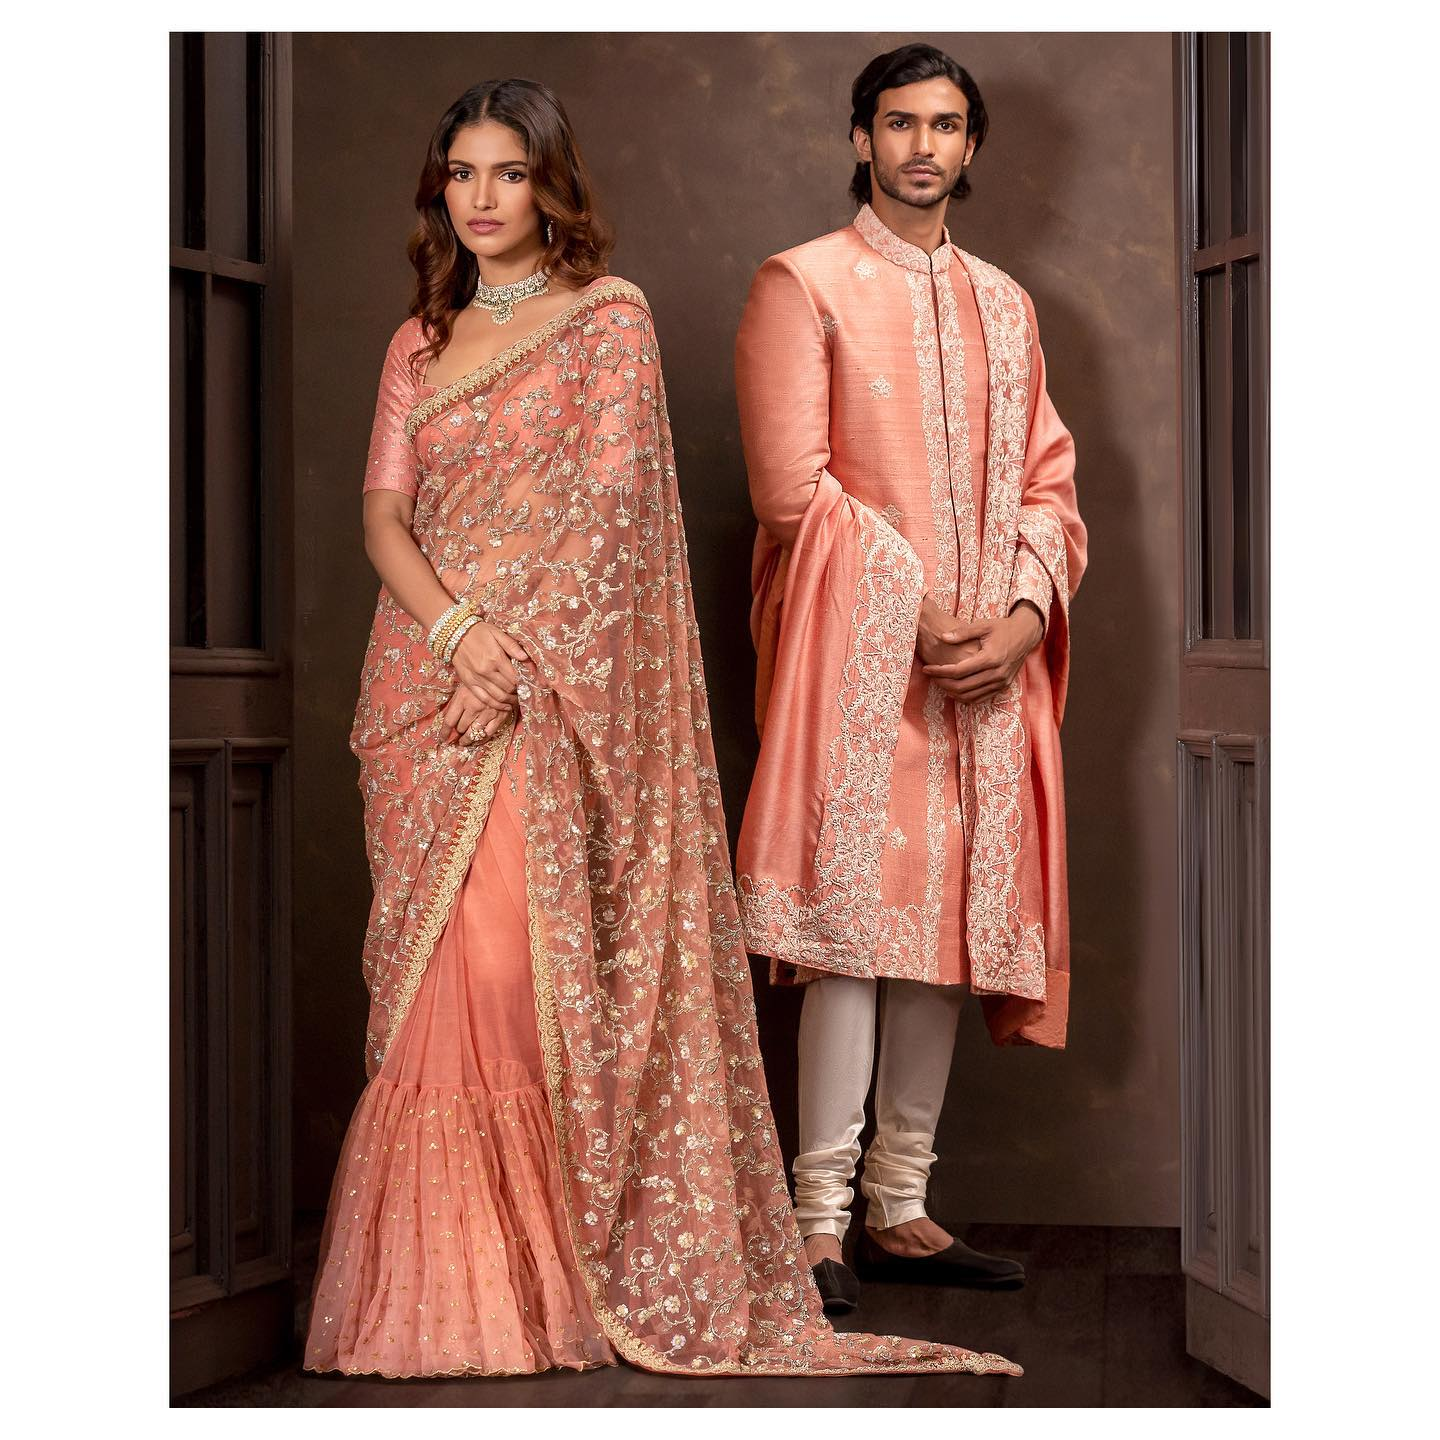 Gorgeous bridal designer saree with hand embroidery work allover. 2021-10-18